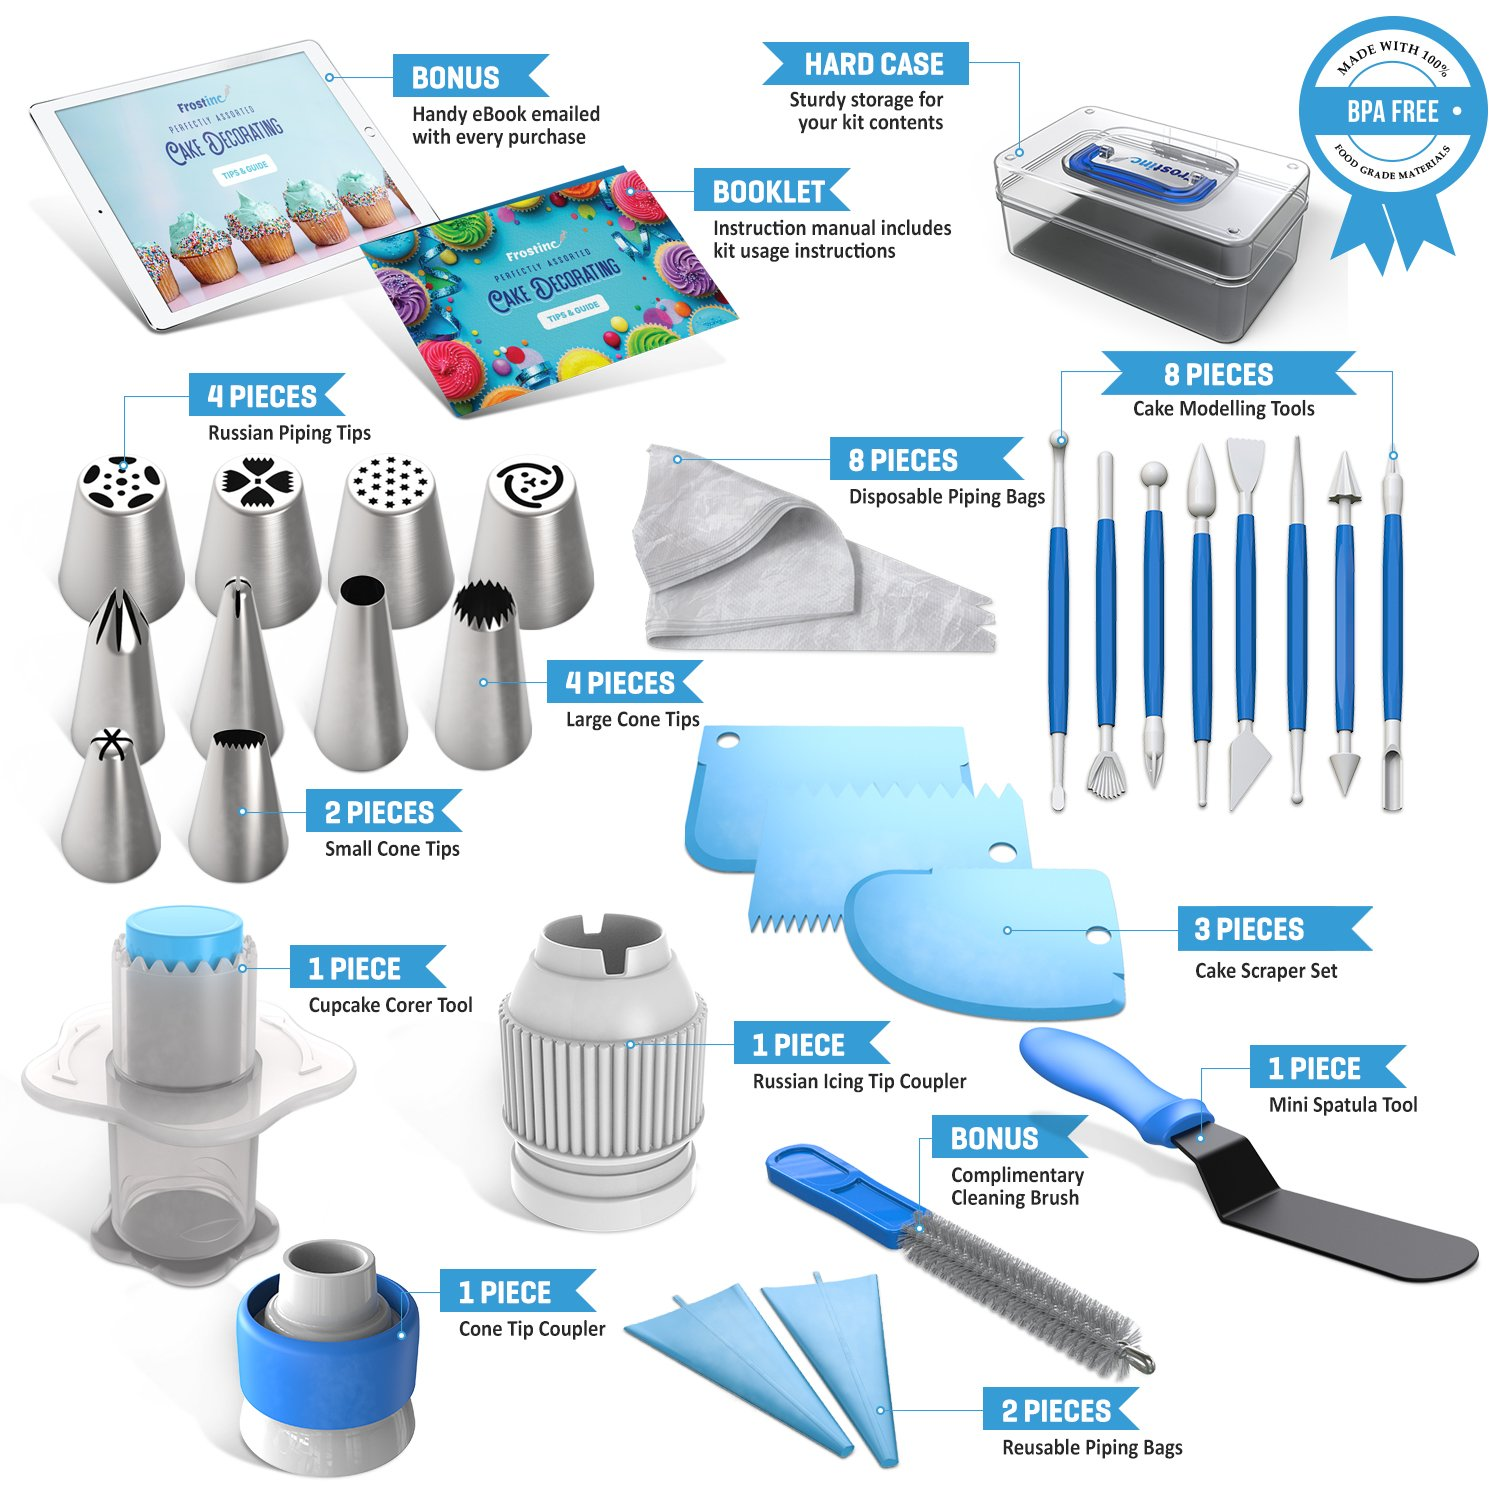 Frostinc Perfectly Assorted Cake Decorating Supplies 34 Pcs Kit - 10 Russian & Cone Icing Tips with 2 Couplers, 2 Reusable & 6 Disposable Piping Bags, 8 Model Tools, Scrapers & BONUS Items by Frostinc (Image #2)